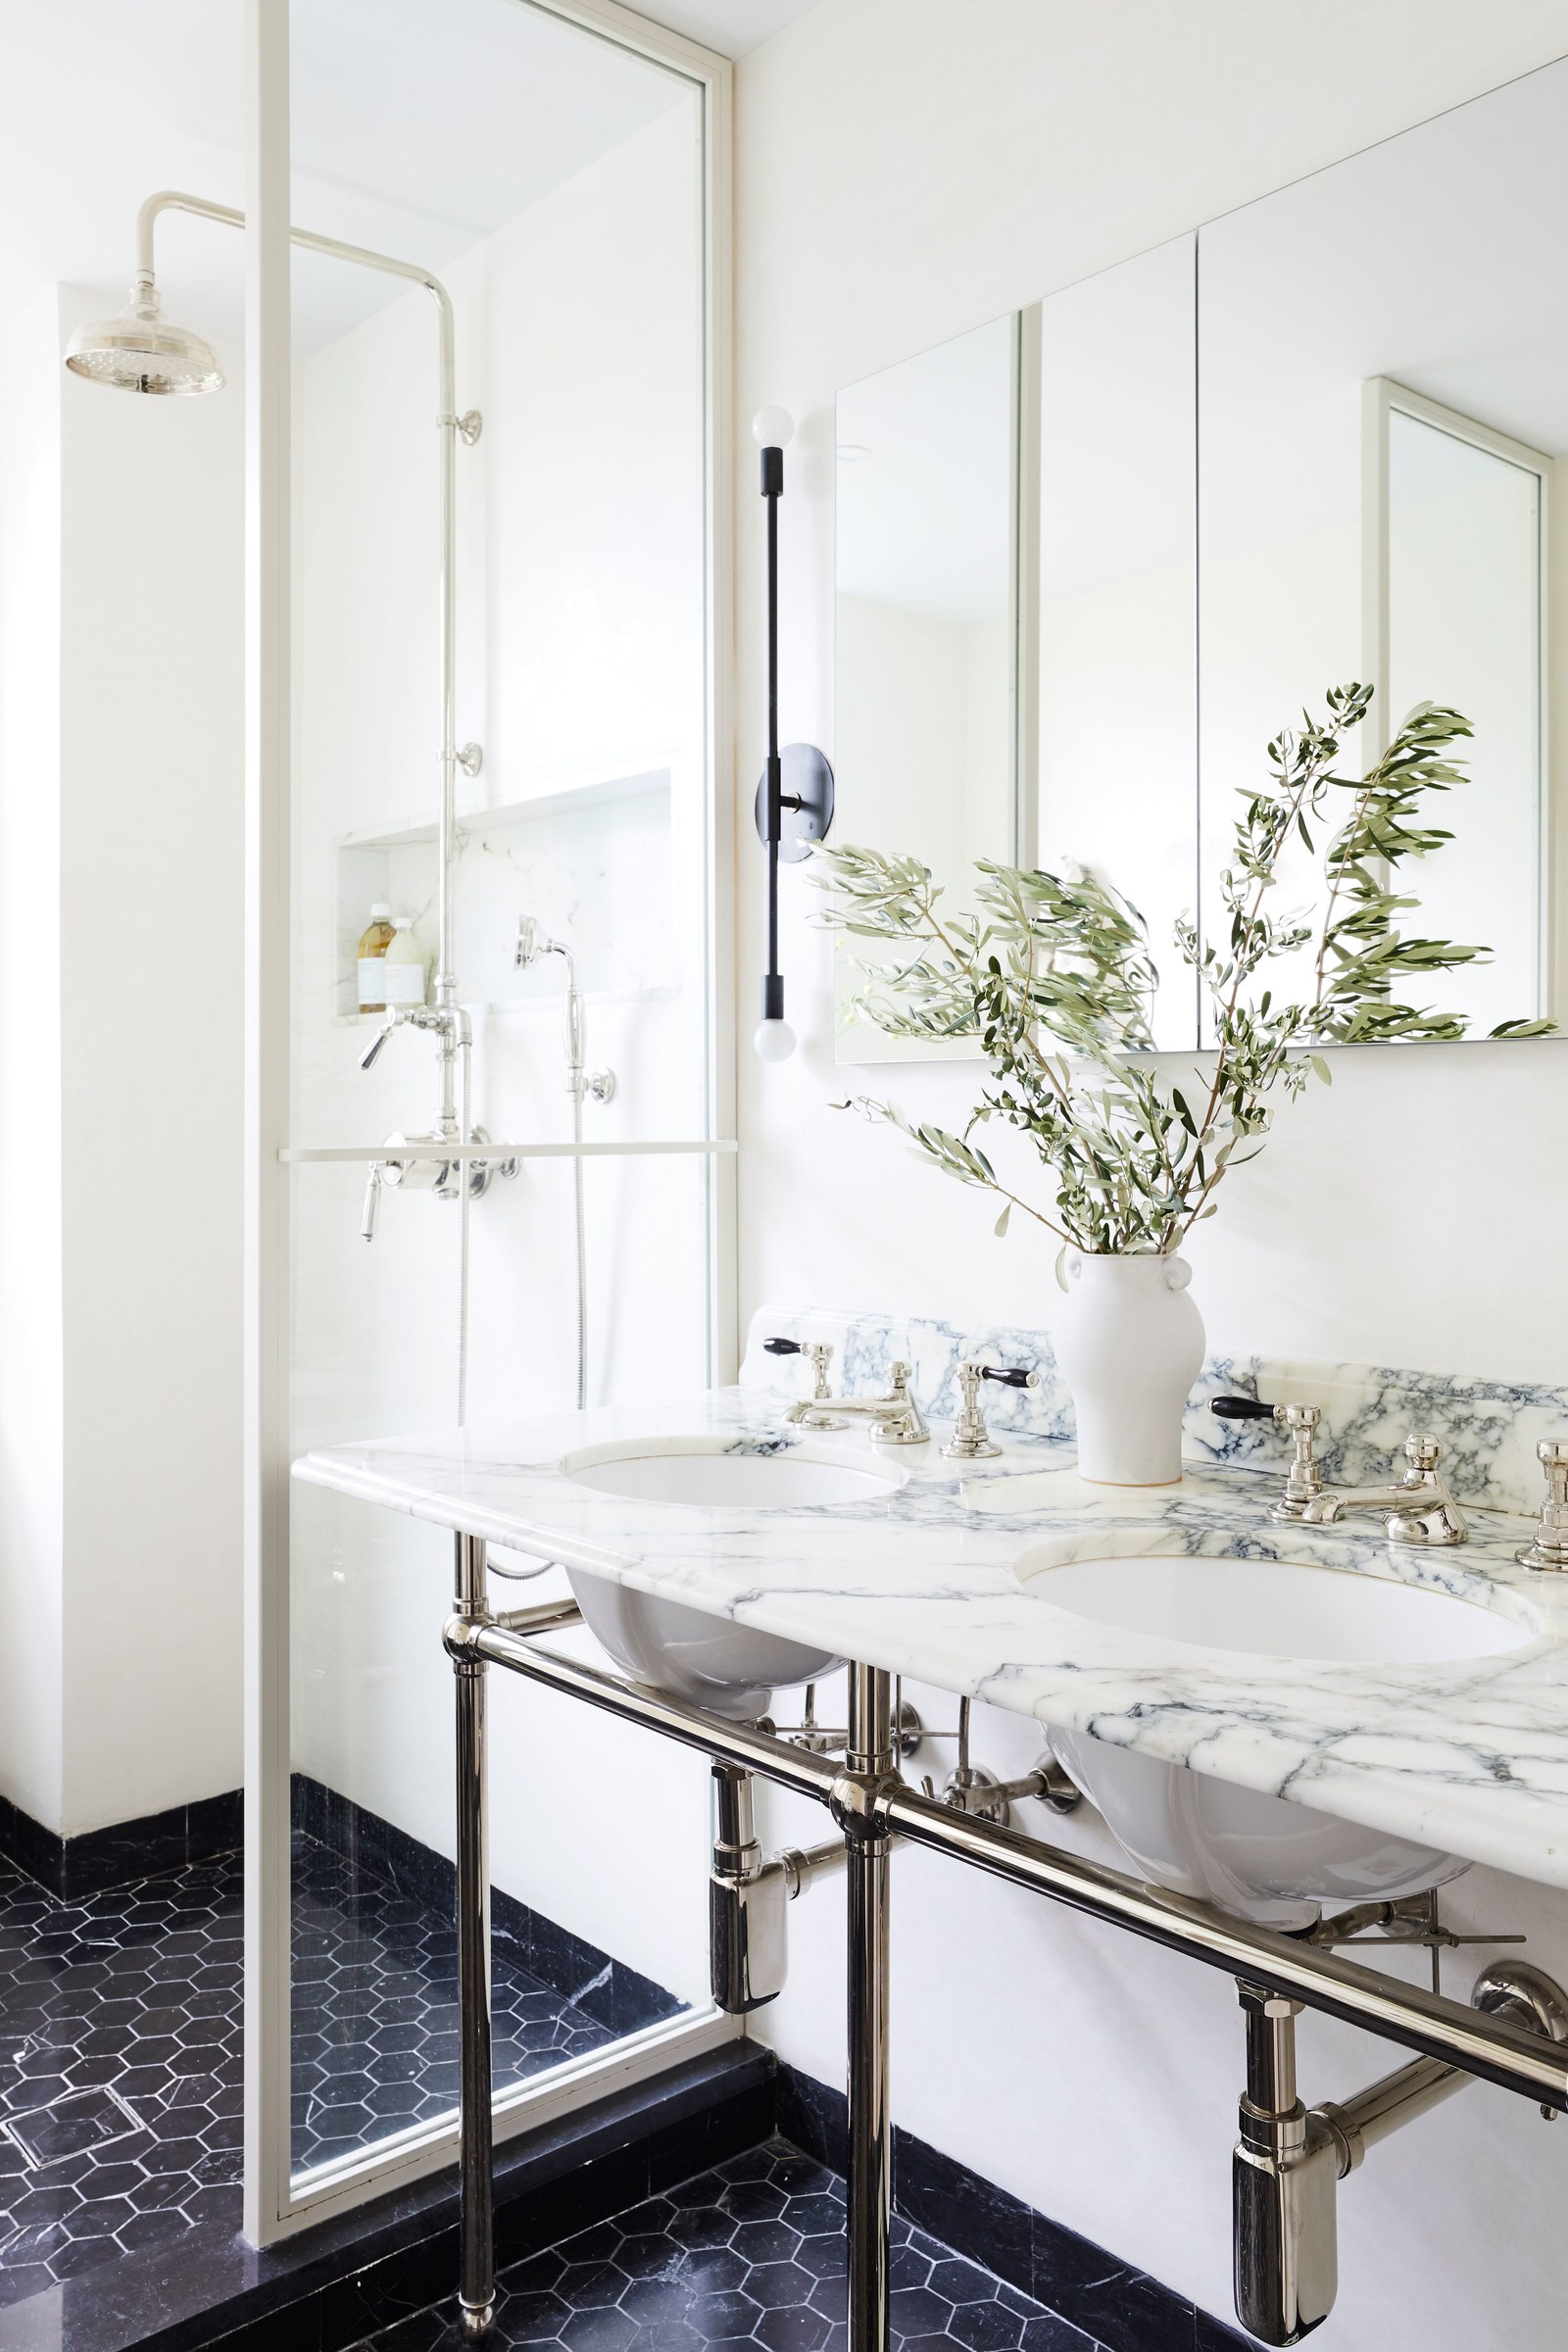 SE_Prospect_Park_West_Master_Bathroom_016